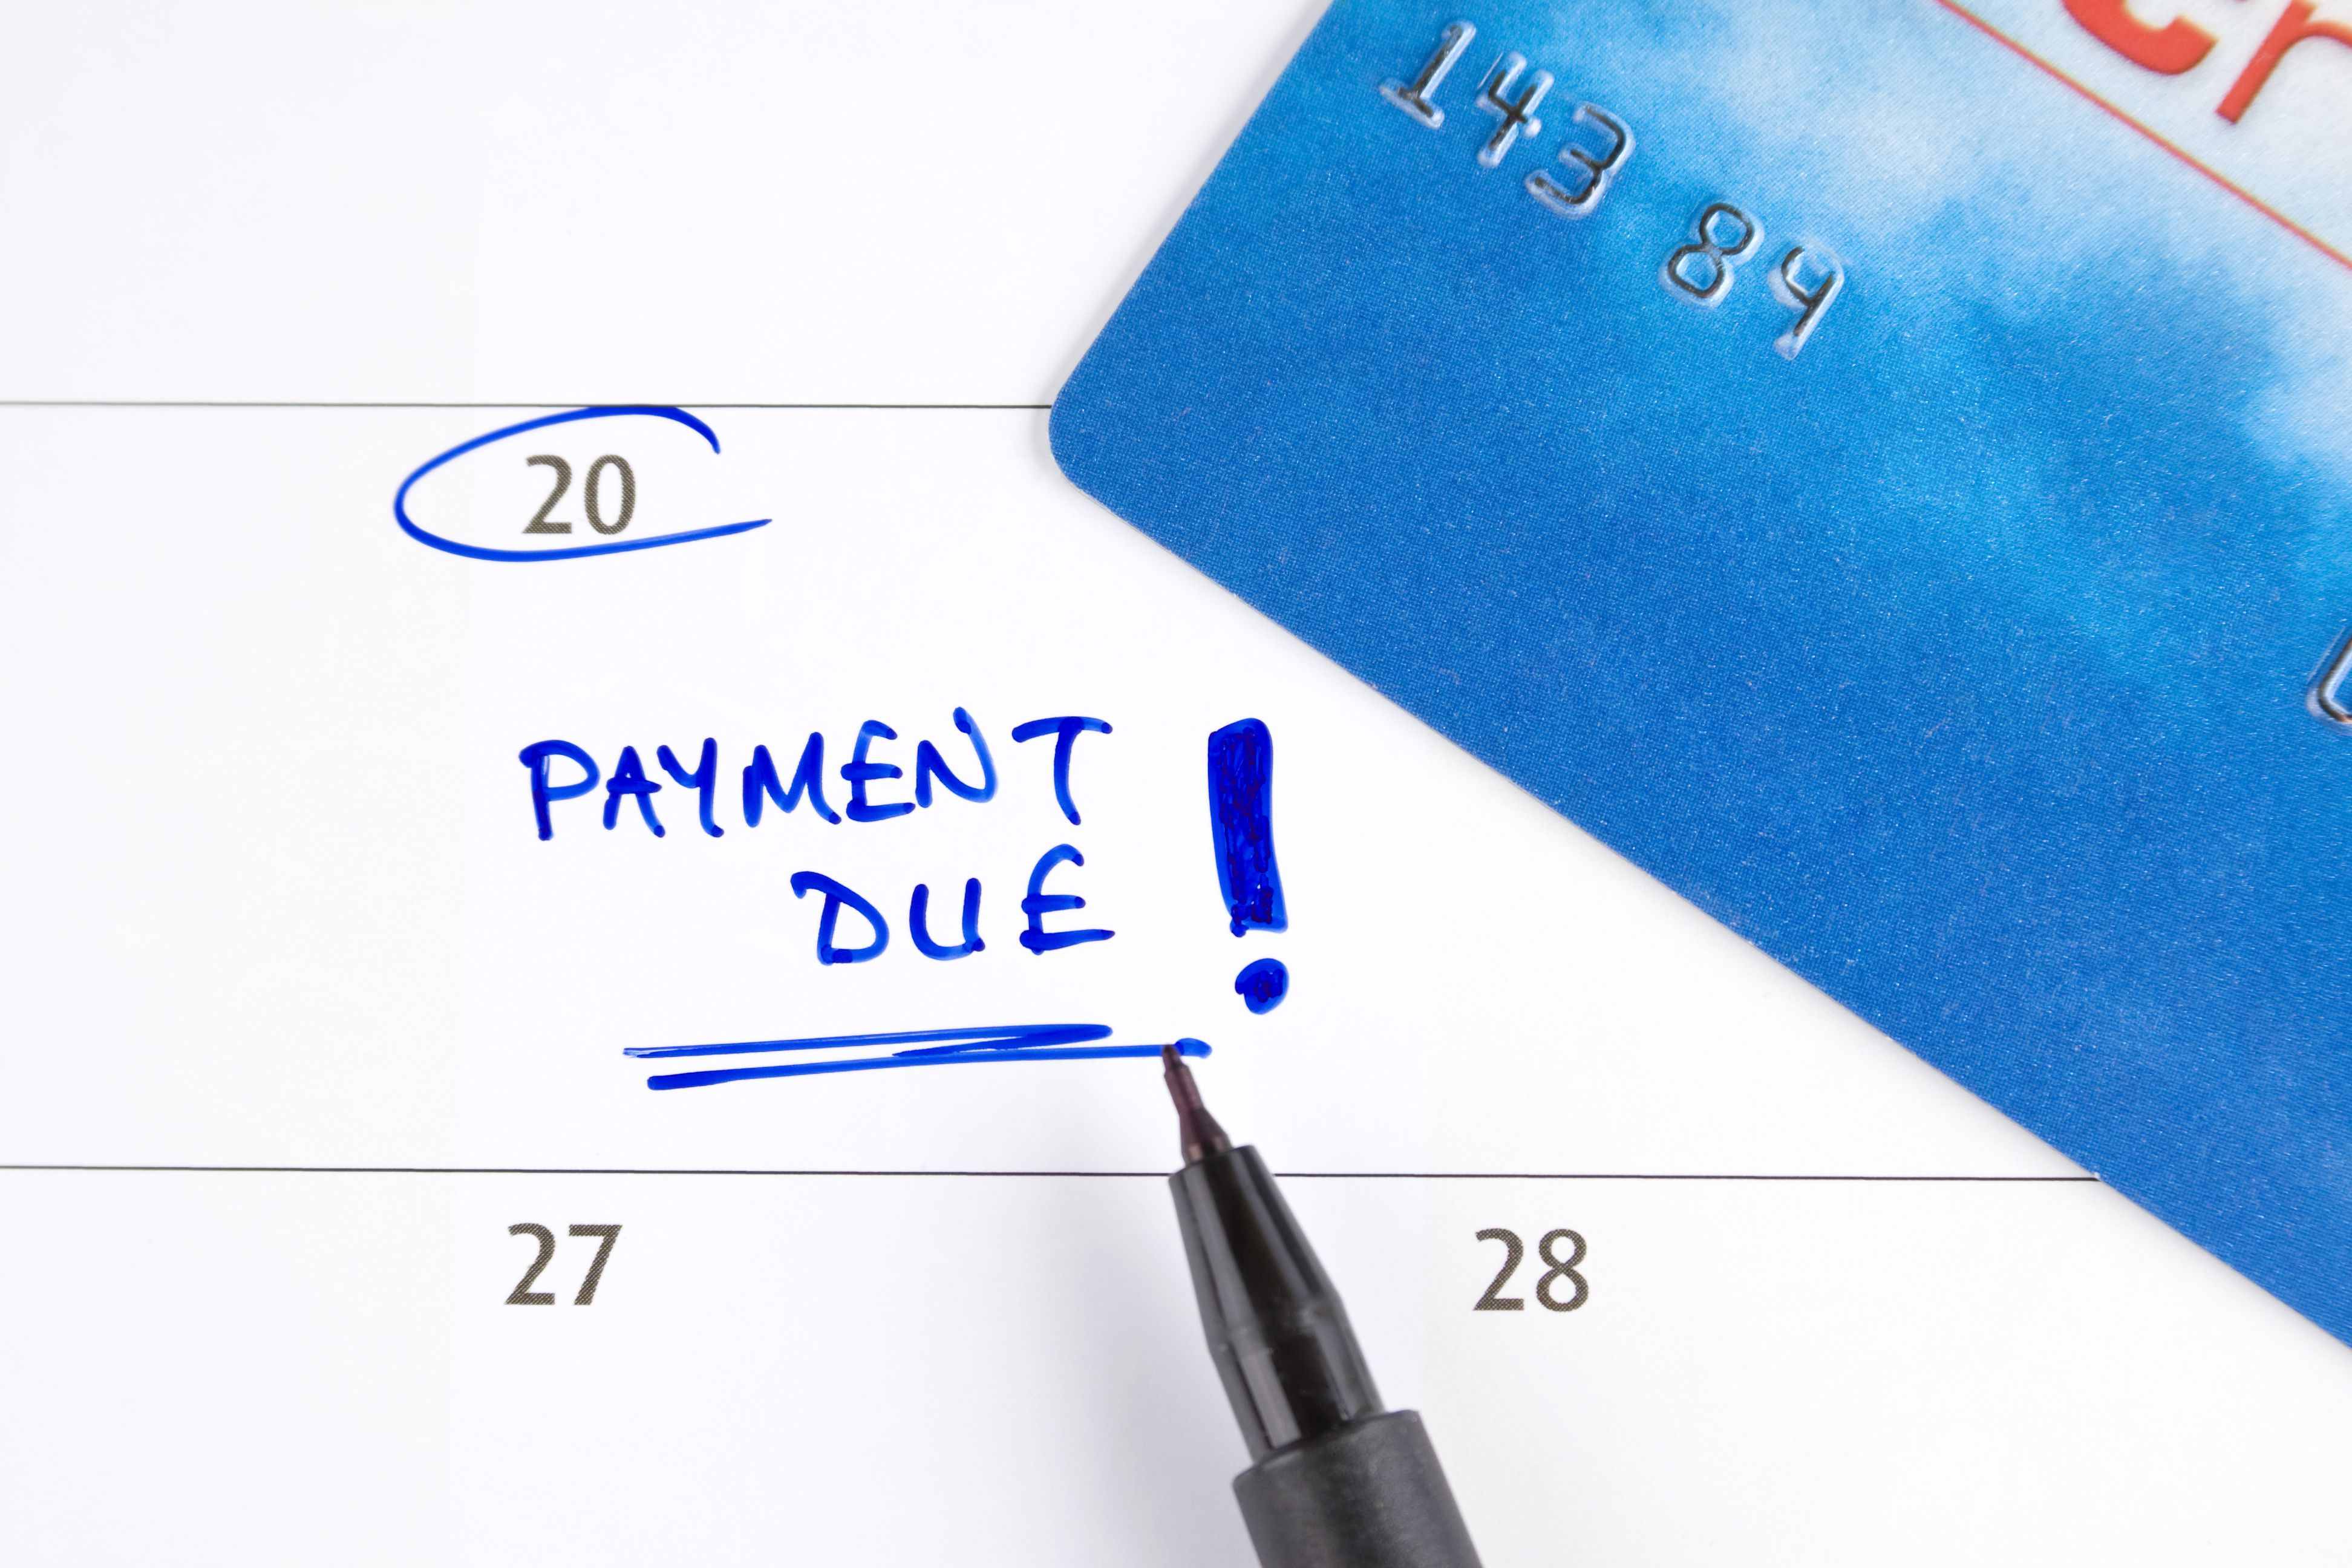 Making timely credit card payments is one of the best ways to build good credit